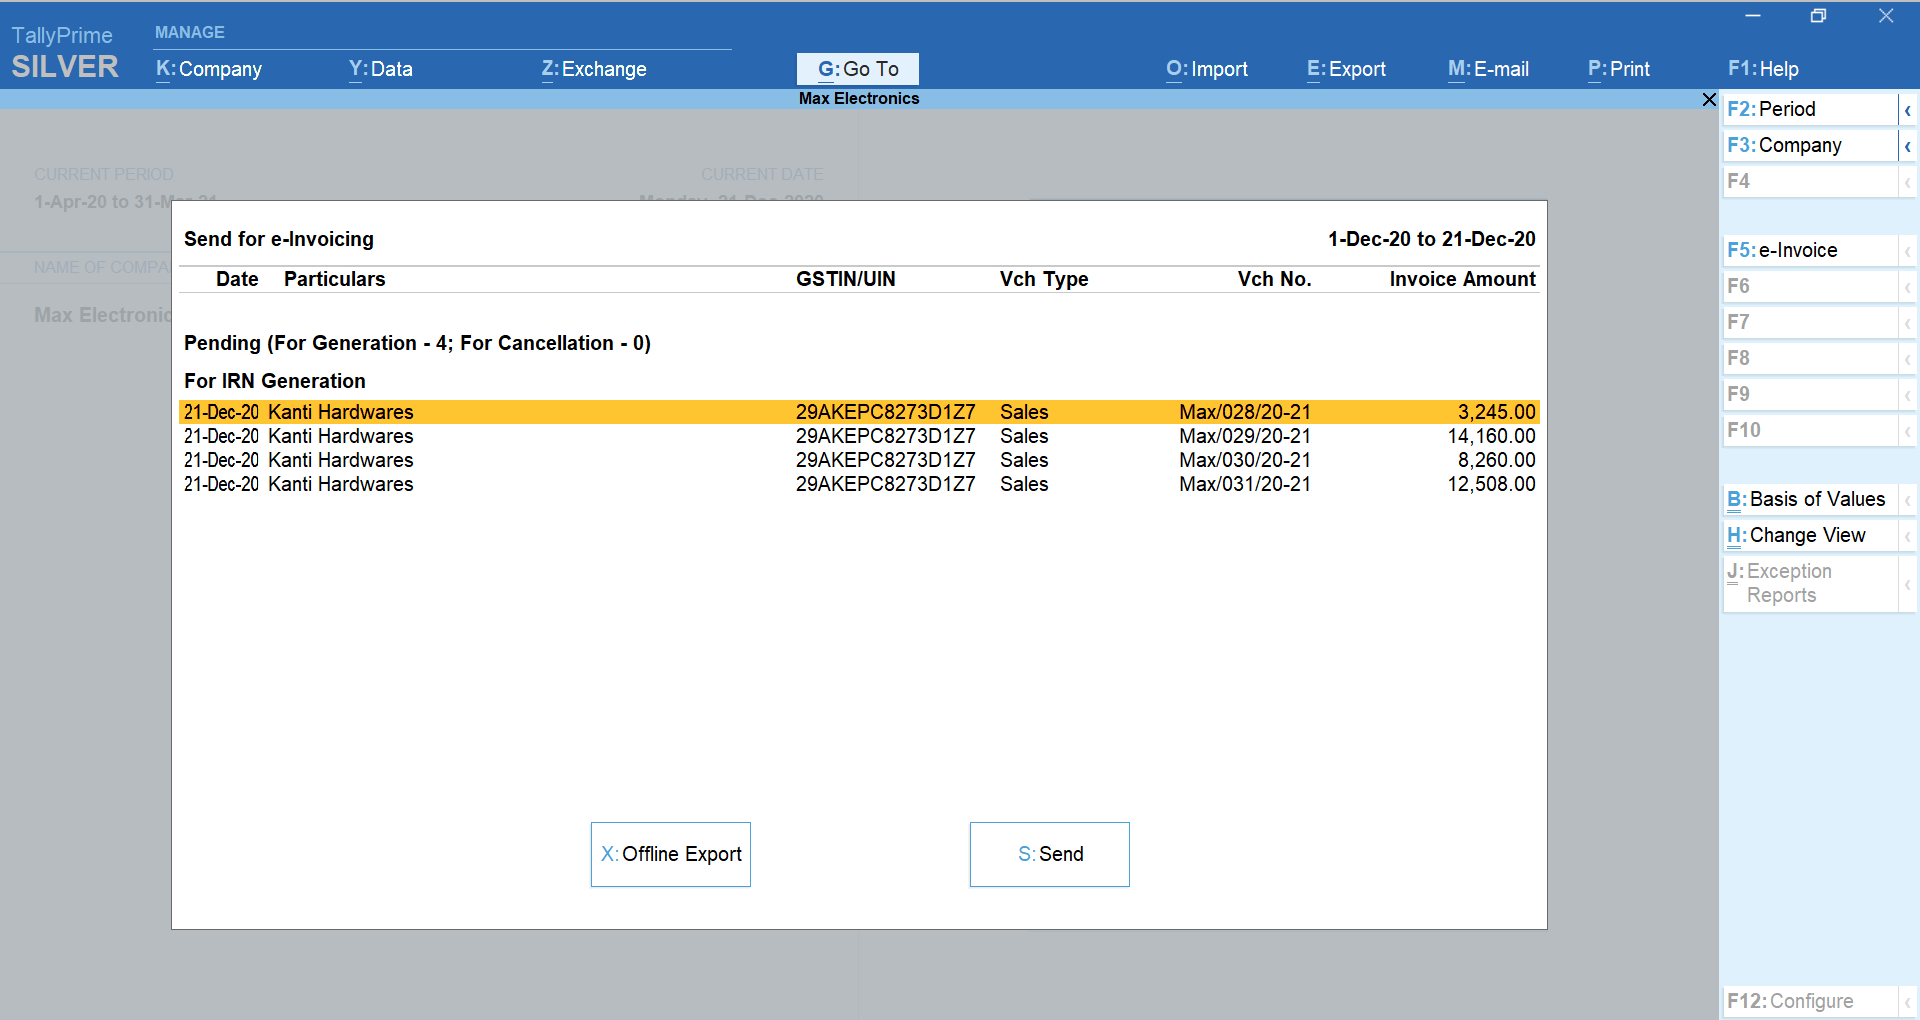 Bulk Generation of e-Invoices in TallyPrime